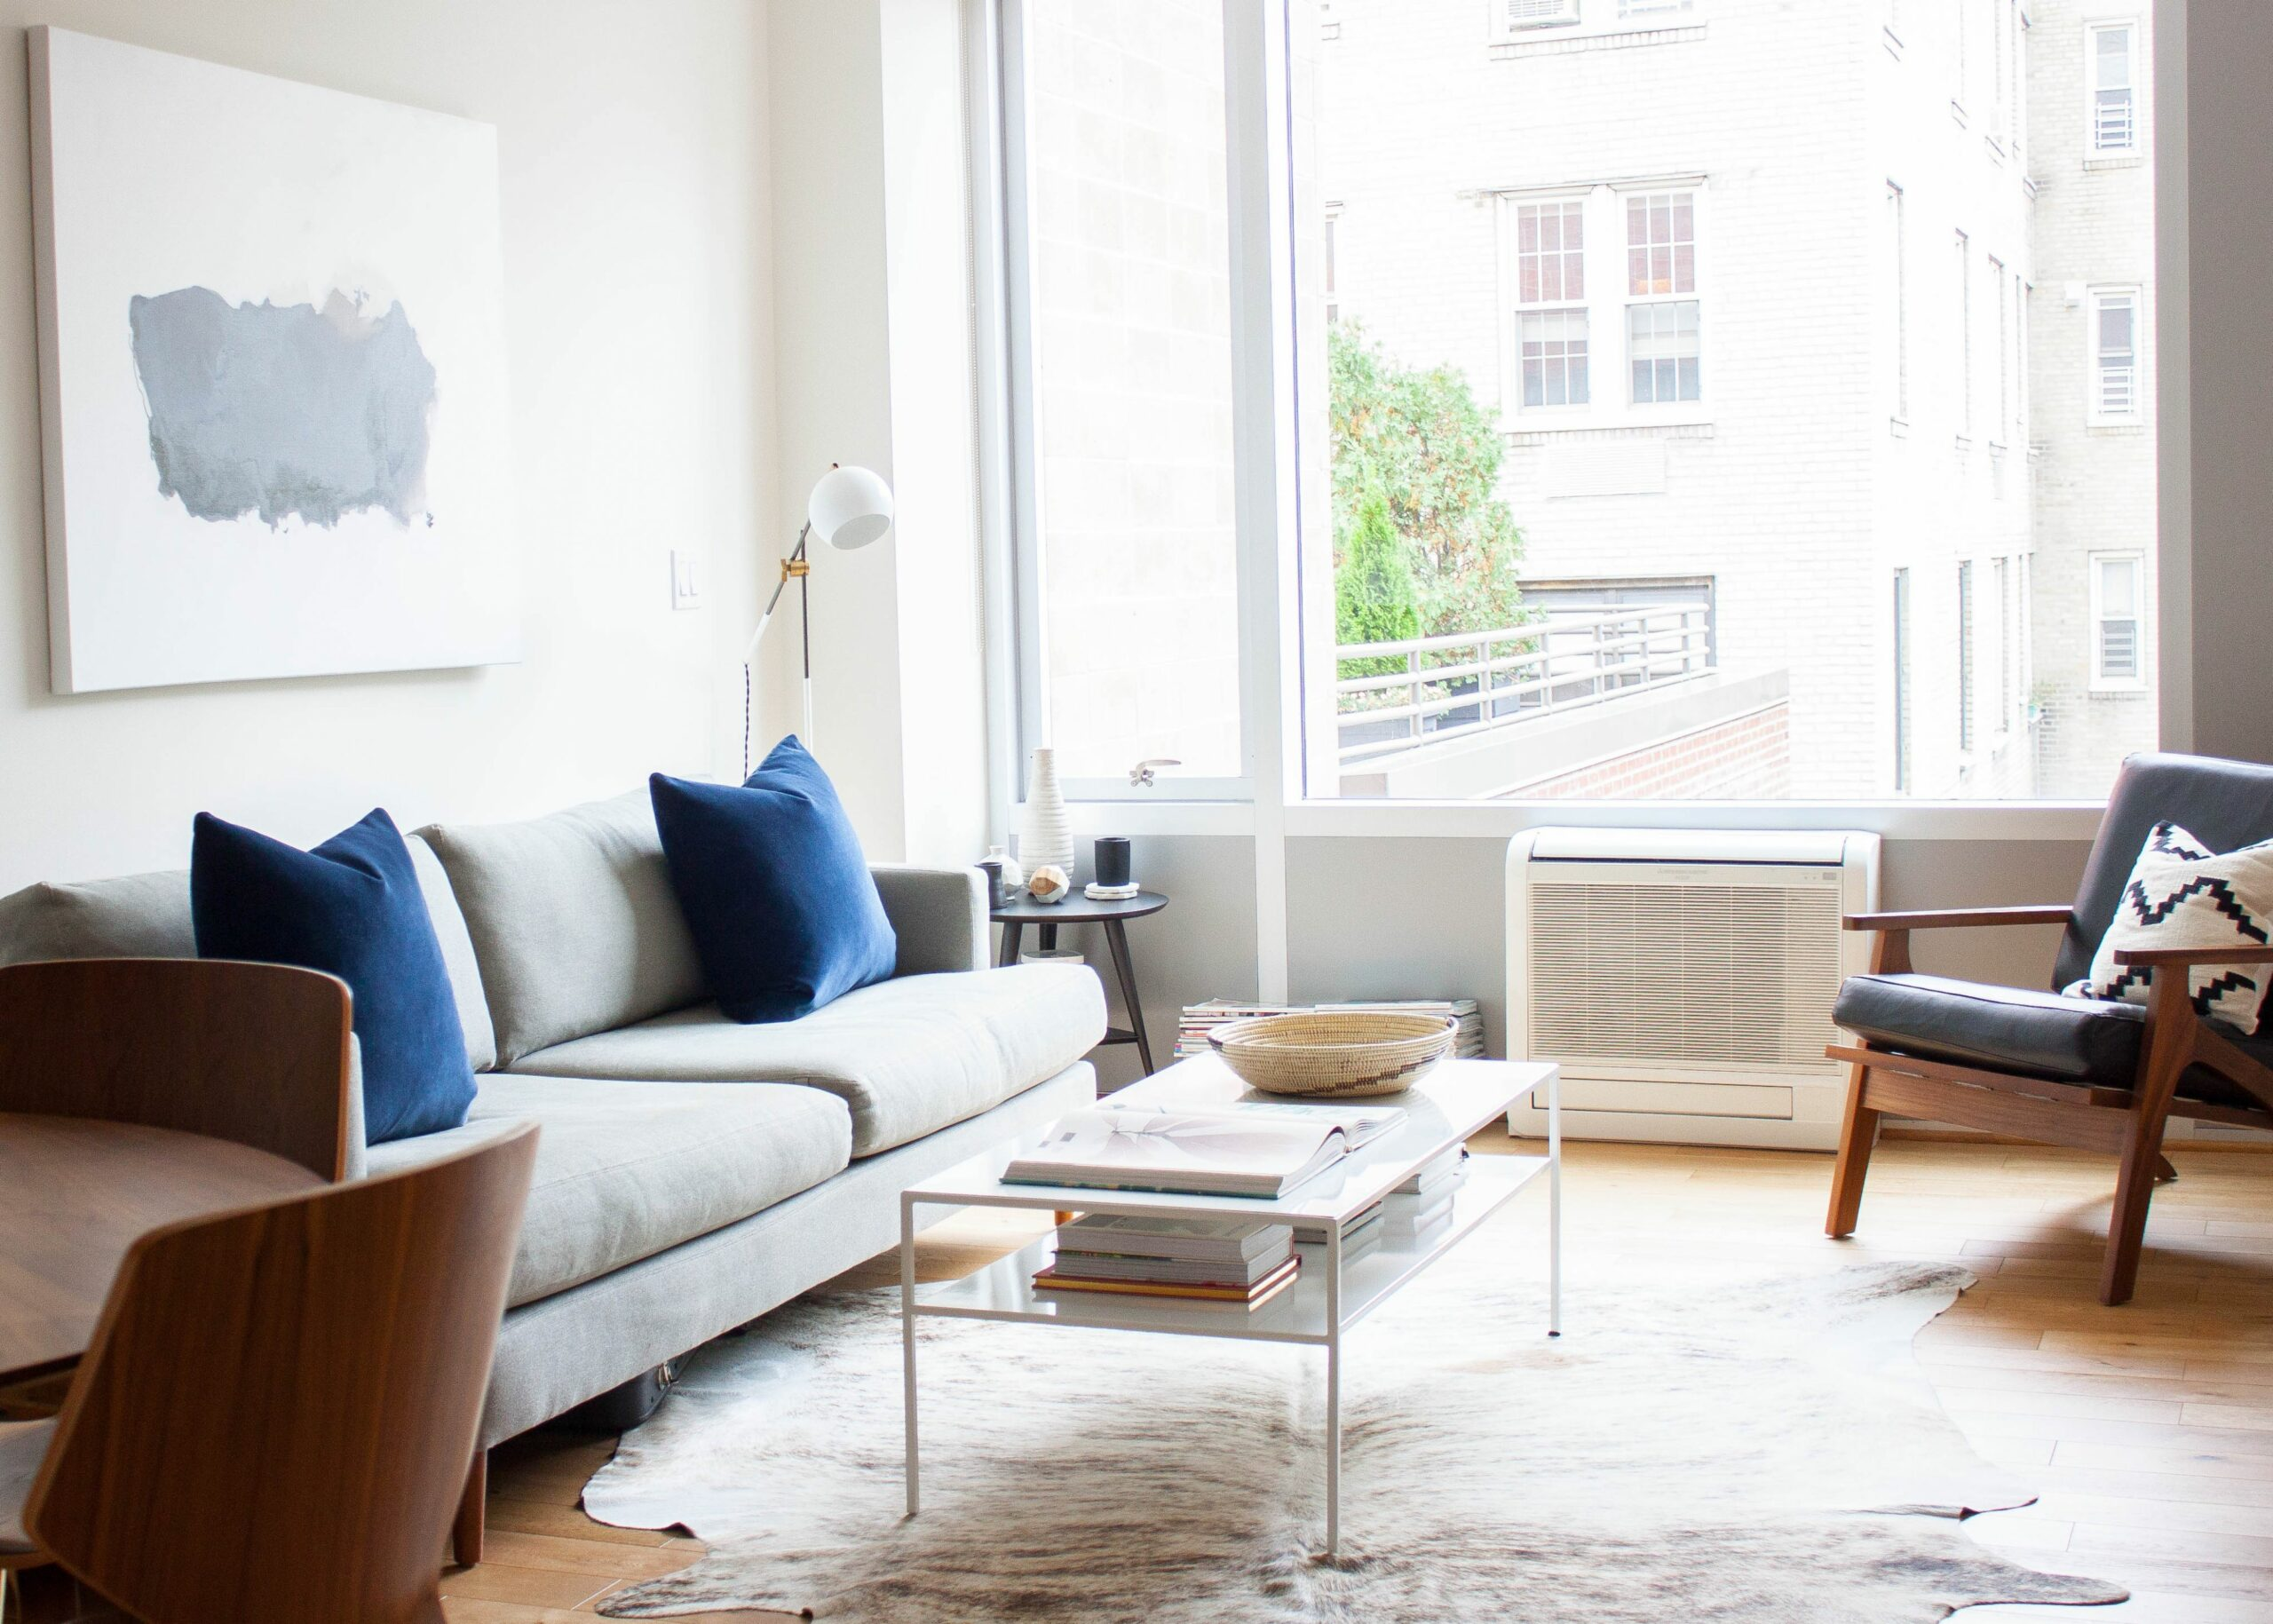 9 Small Living Room Decorating & Design Ideas - How to Decorate a ..